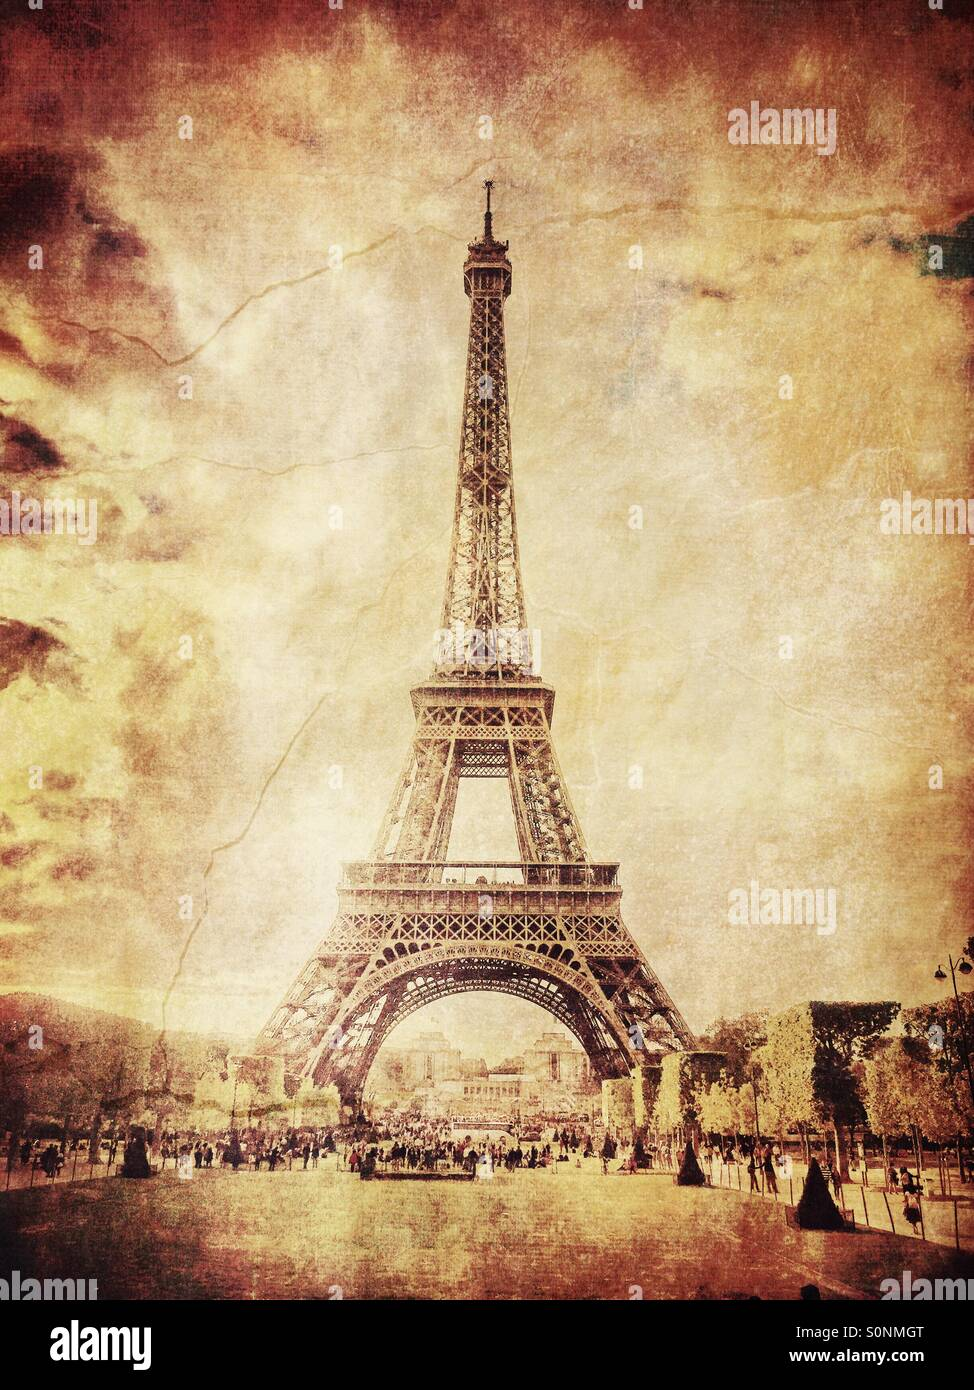 View of Eiffel Tower from Champs de Mars in Paris, France. Aged sepia tones and vintage paper texture overlay.Stock Photo